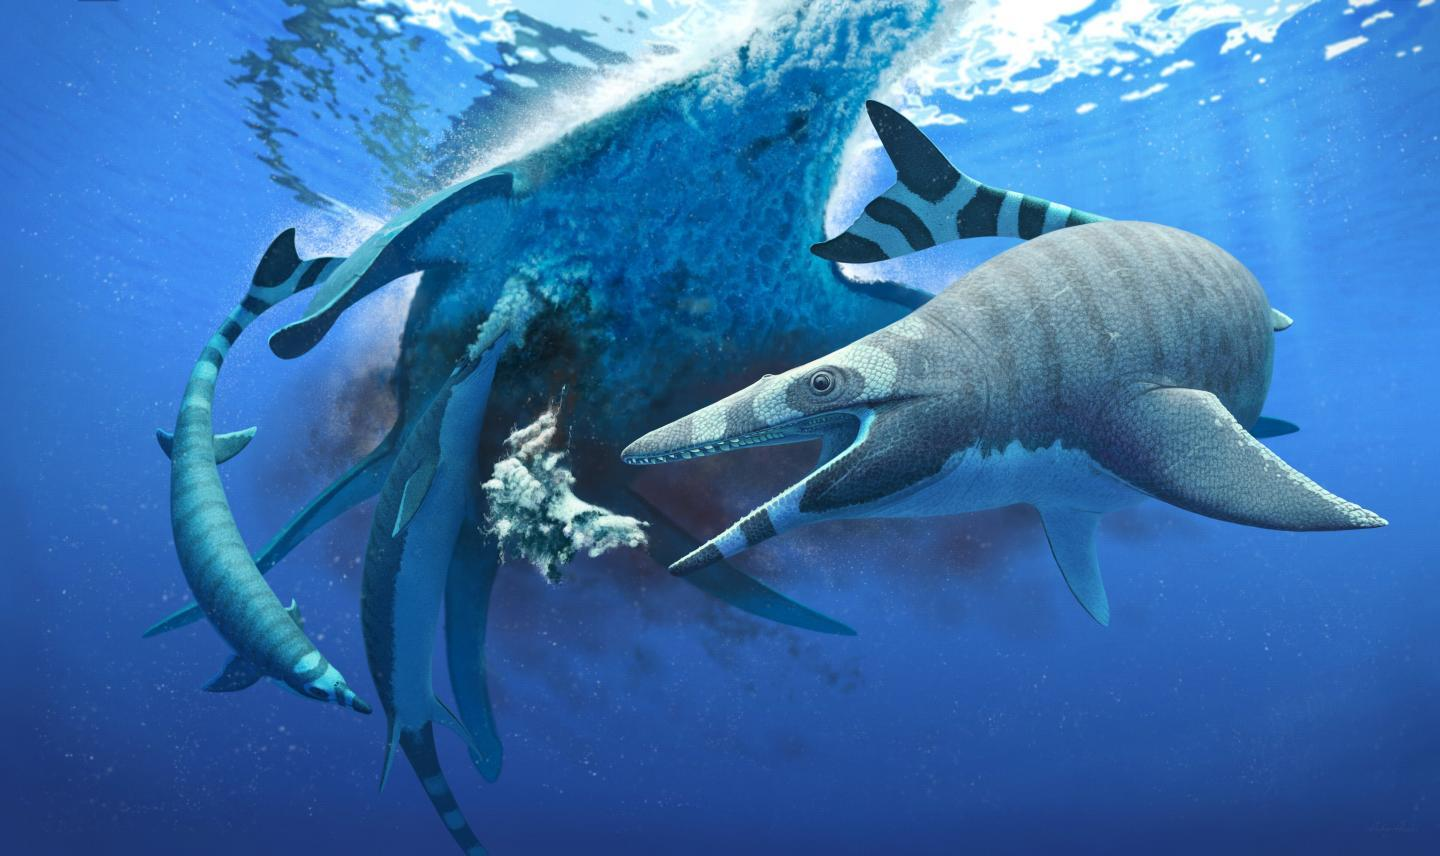 Xenodens calminechari, pictured feeding on the carcass of a larger marine reptile